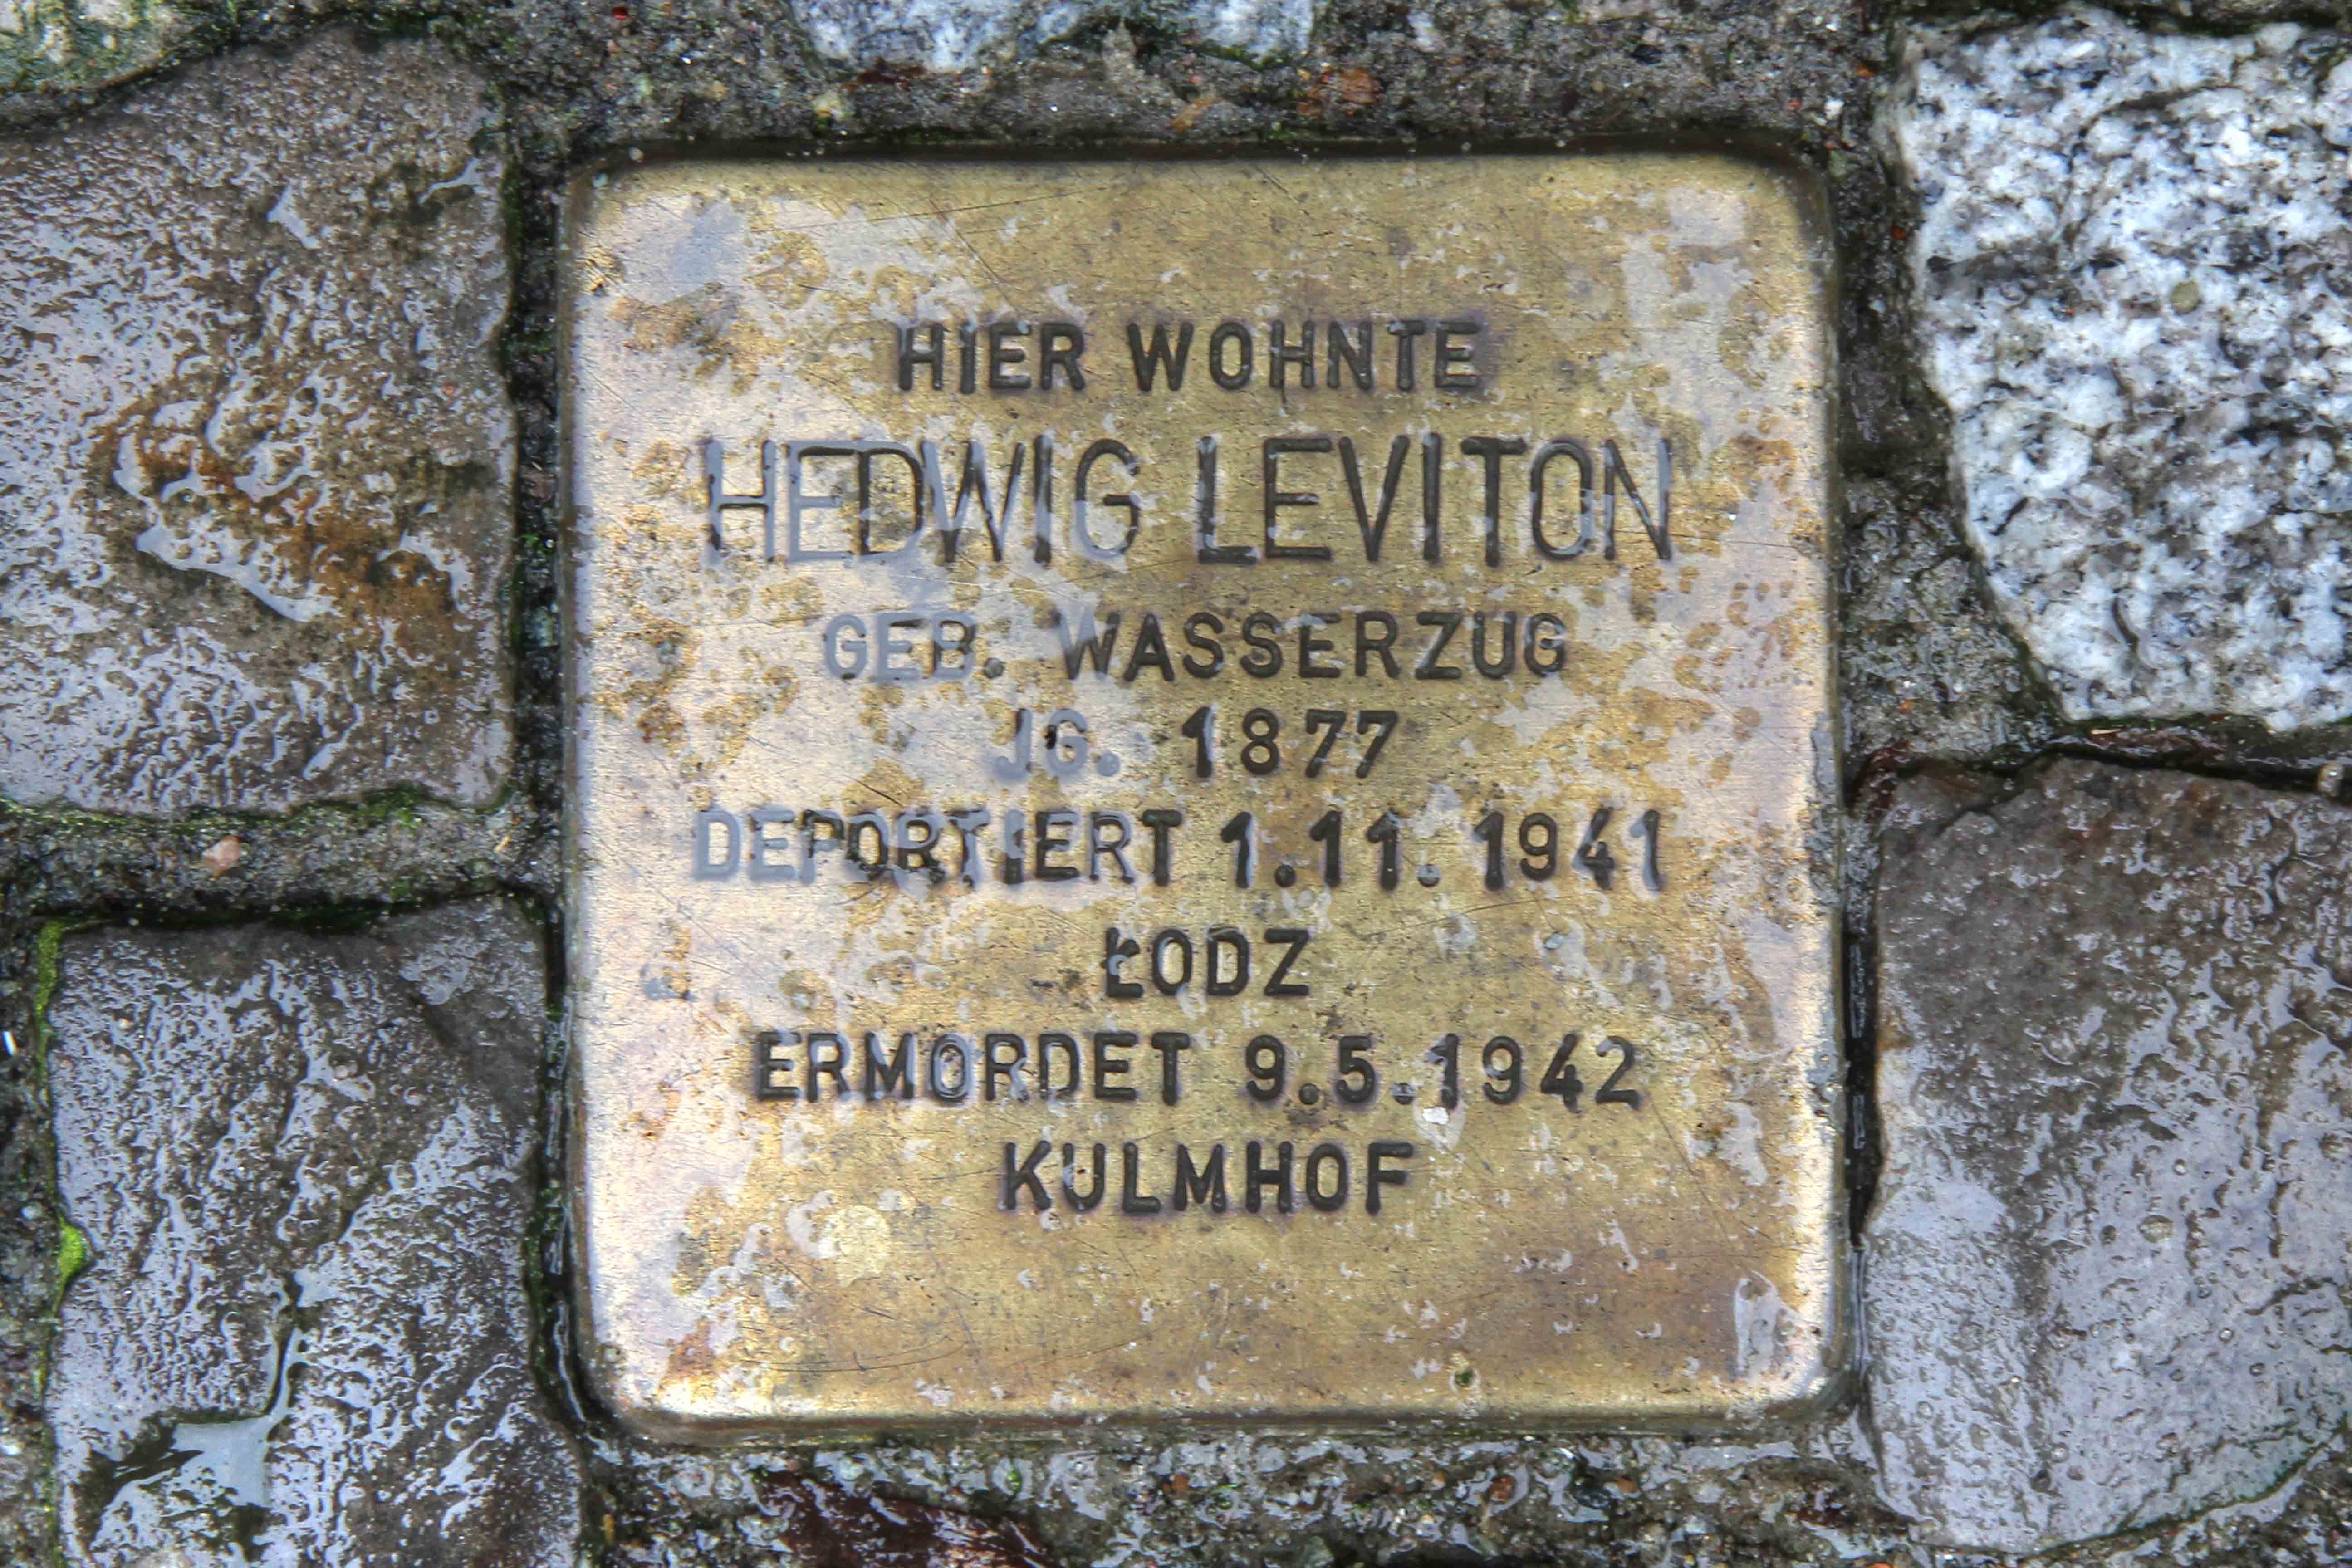 Stolpersteine Berlin 160: In memory of Hedwig Leviton (Niebuhrstrasse 65)